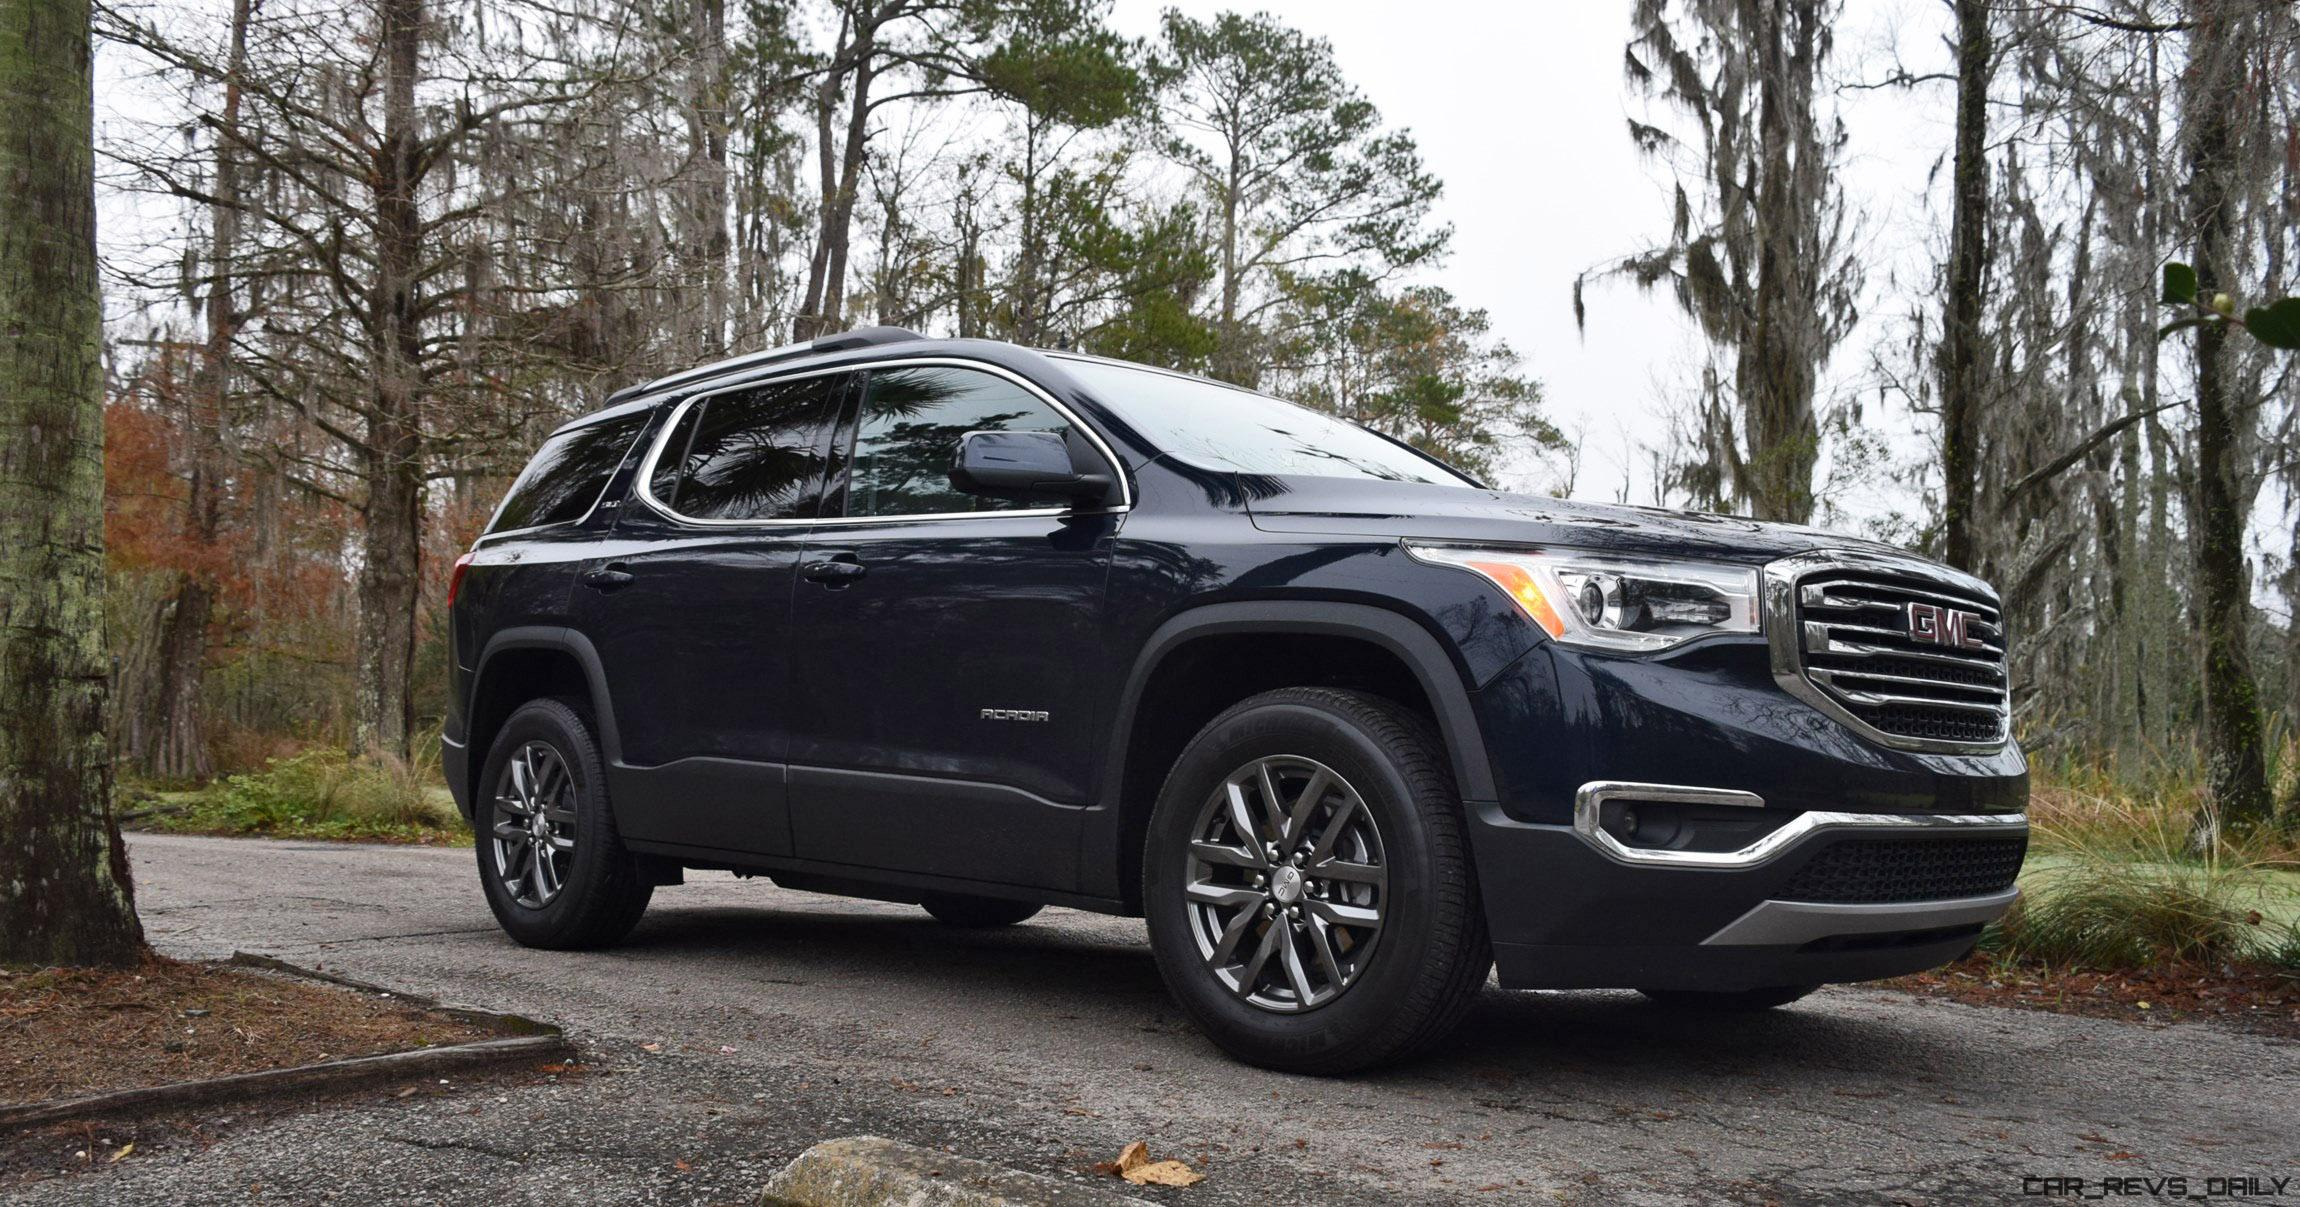 2017 GMC Acadia SLT-1 FWD - HD Road Test Review